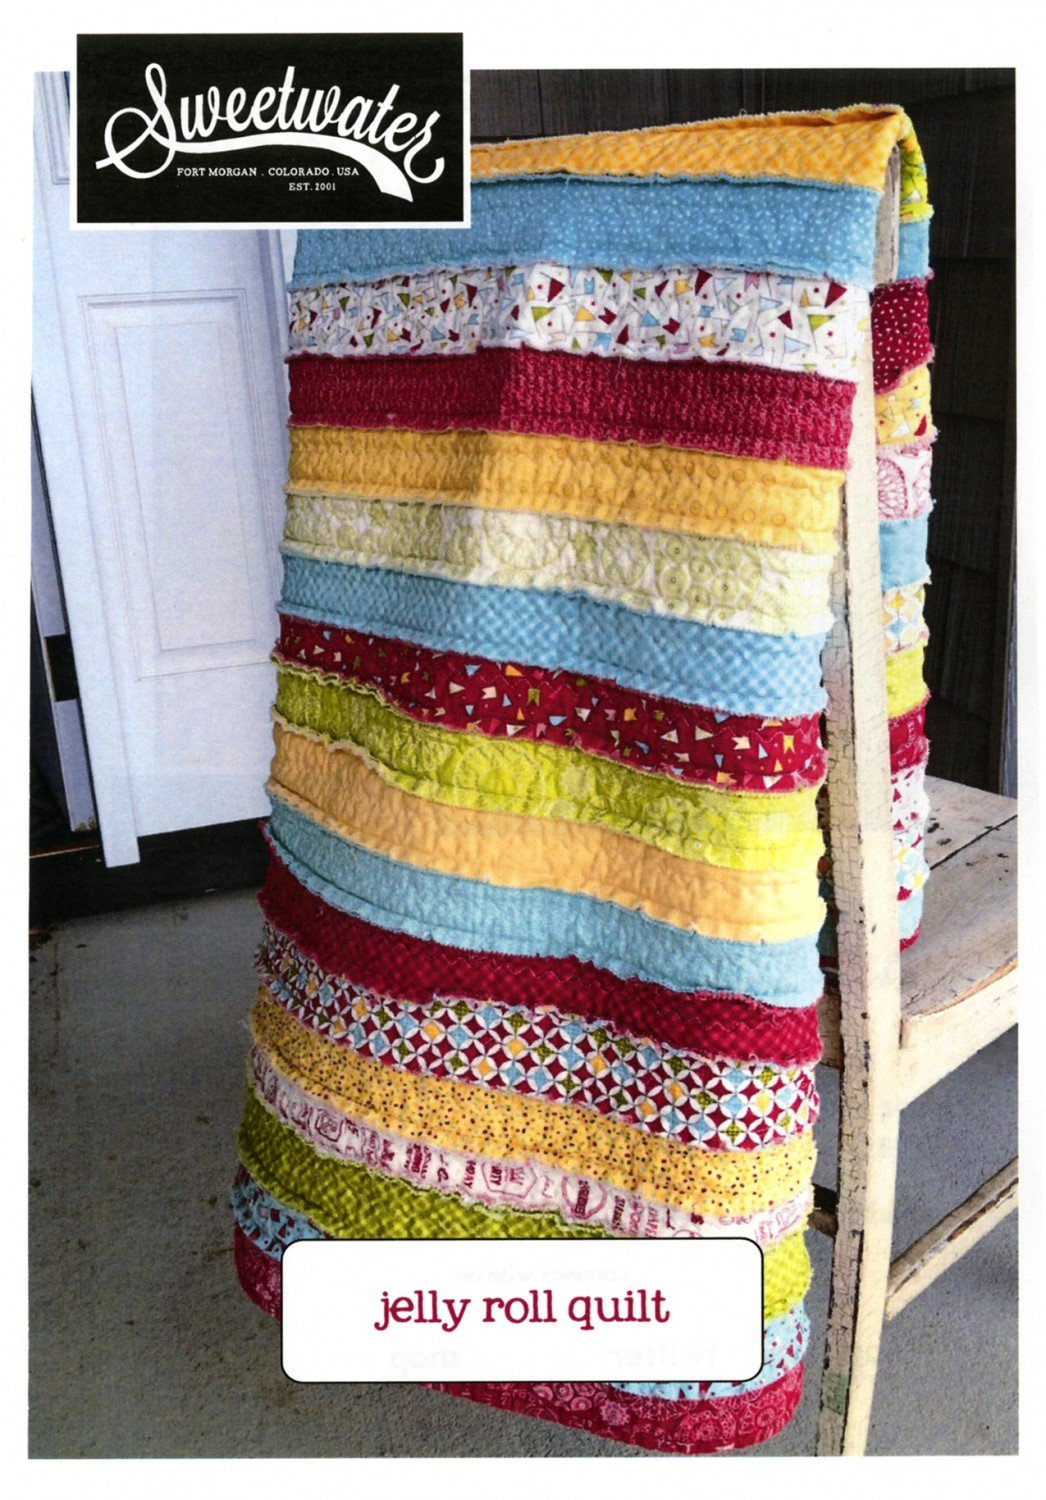 Jelly Roll Quilt by Sweetwater